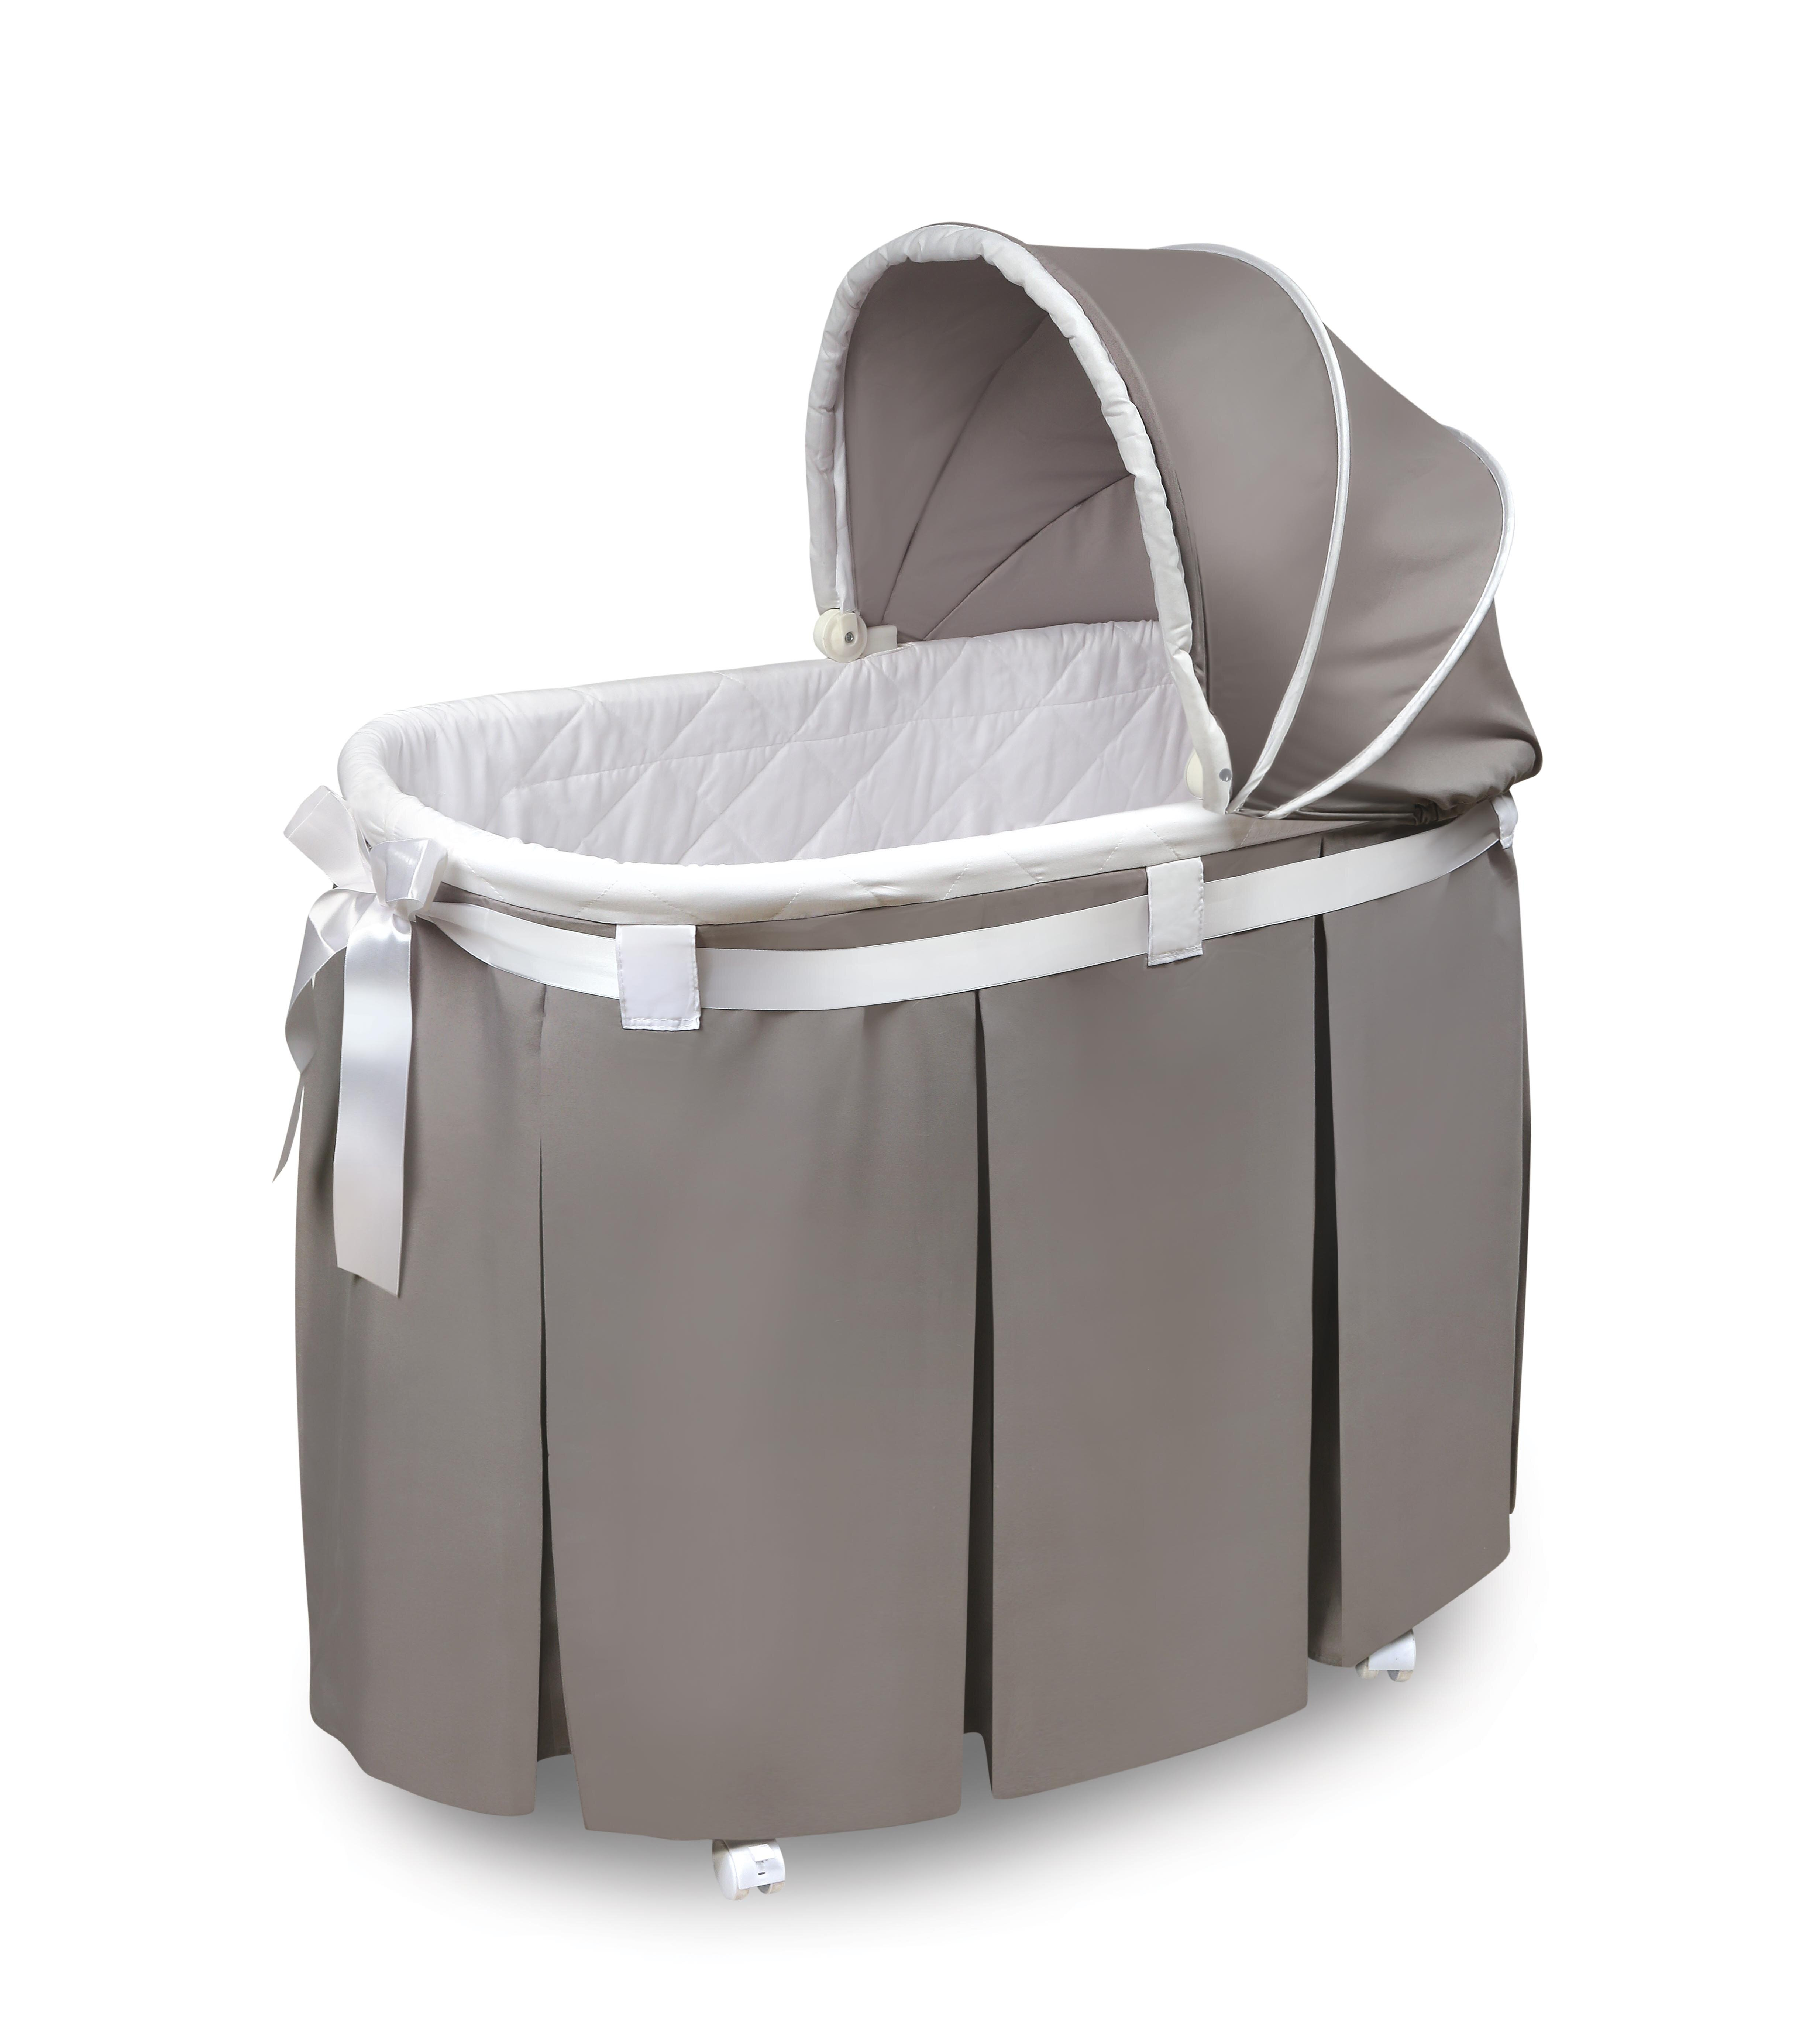 Bon Badger Basket Wishes Oval Bassinet U0026 Reviews | Wayfair